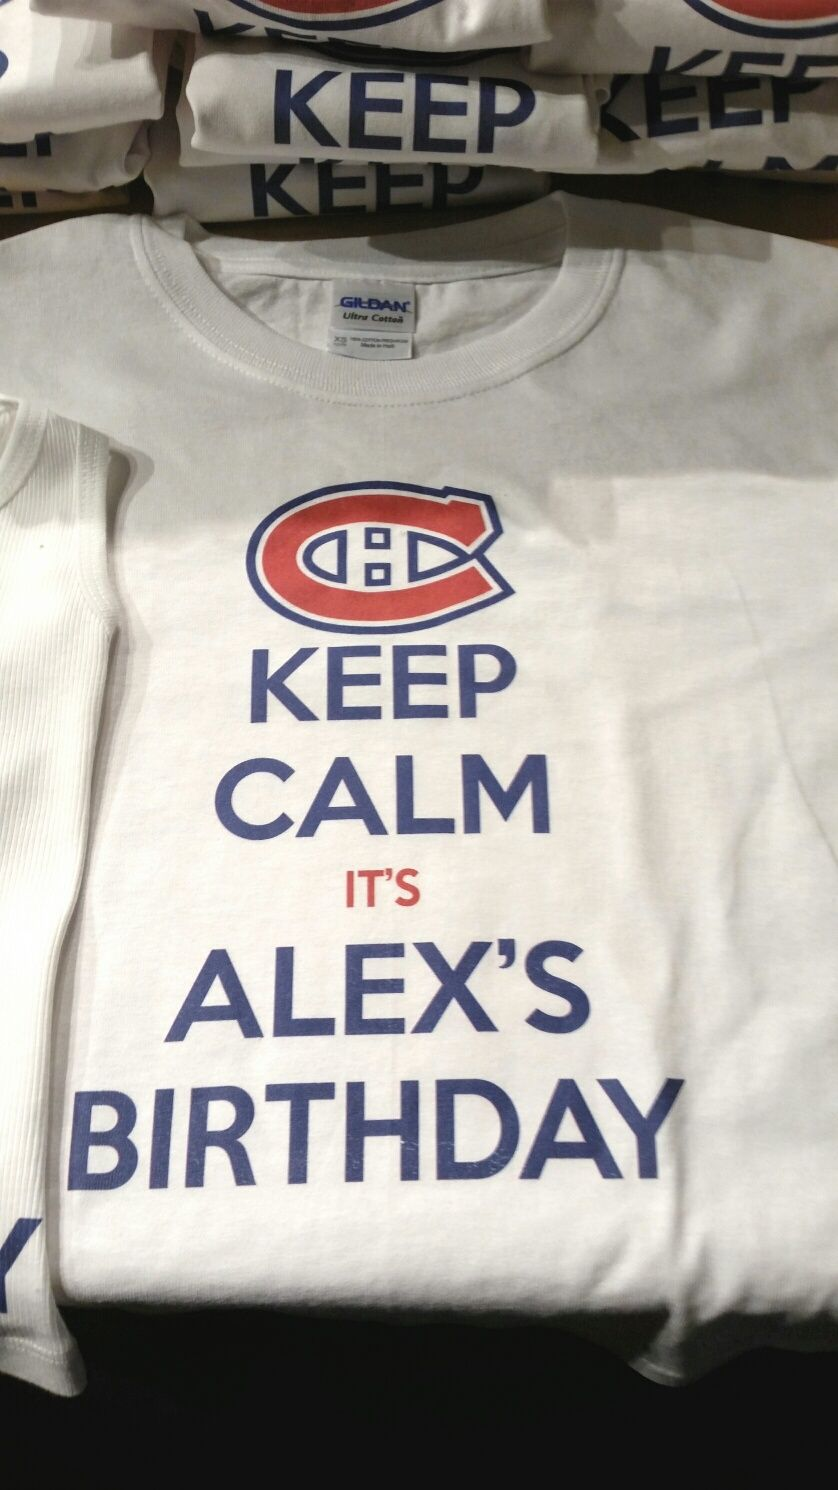 Custom Printed T Shirts For Birthday Party Great Loot Bag Idea Go